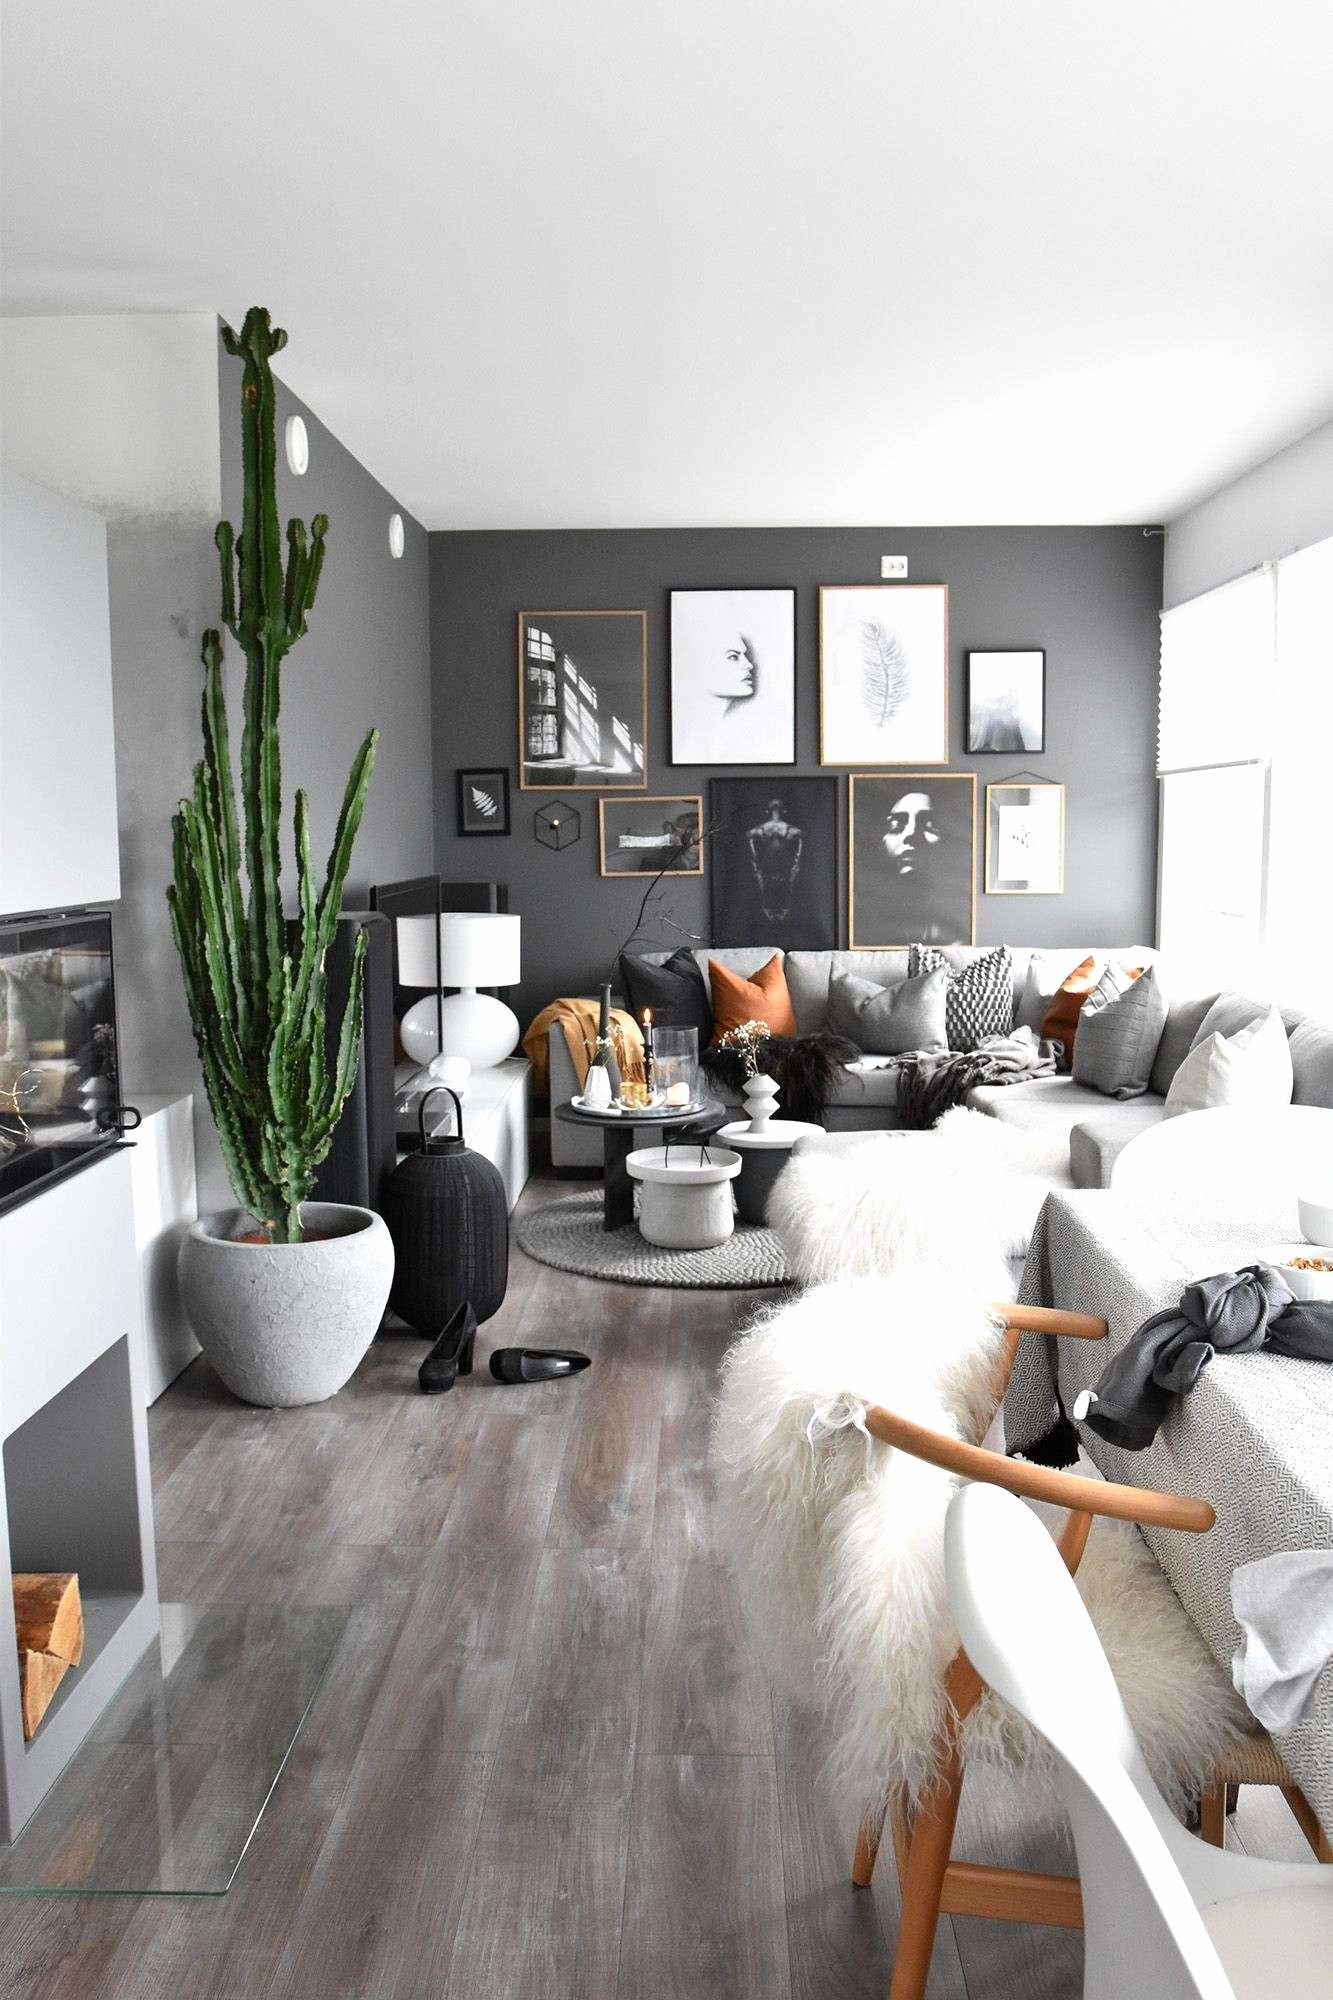 30 Einrichtungsideen Schlafzimmer Beste Ideen 2019 Black Walls Living Room Dark Grey Living Room Living Room Grey